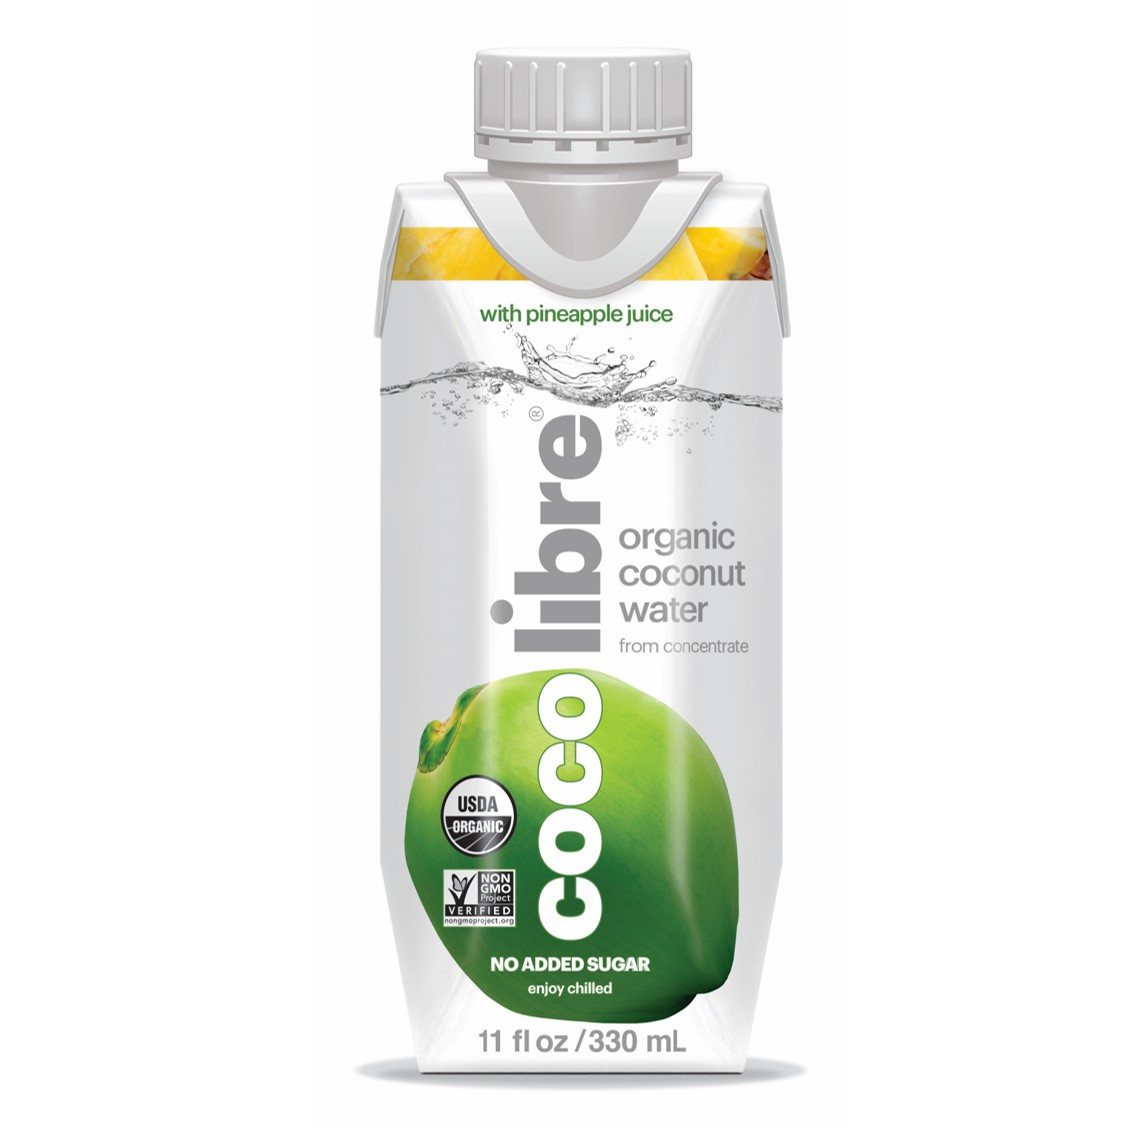 Coco Libre Pure Organic Coconut Water with Pineapple (>95% Organic), 330 ml